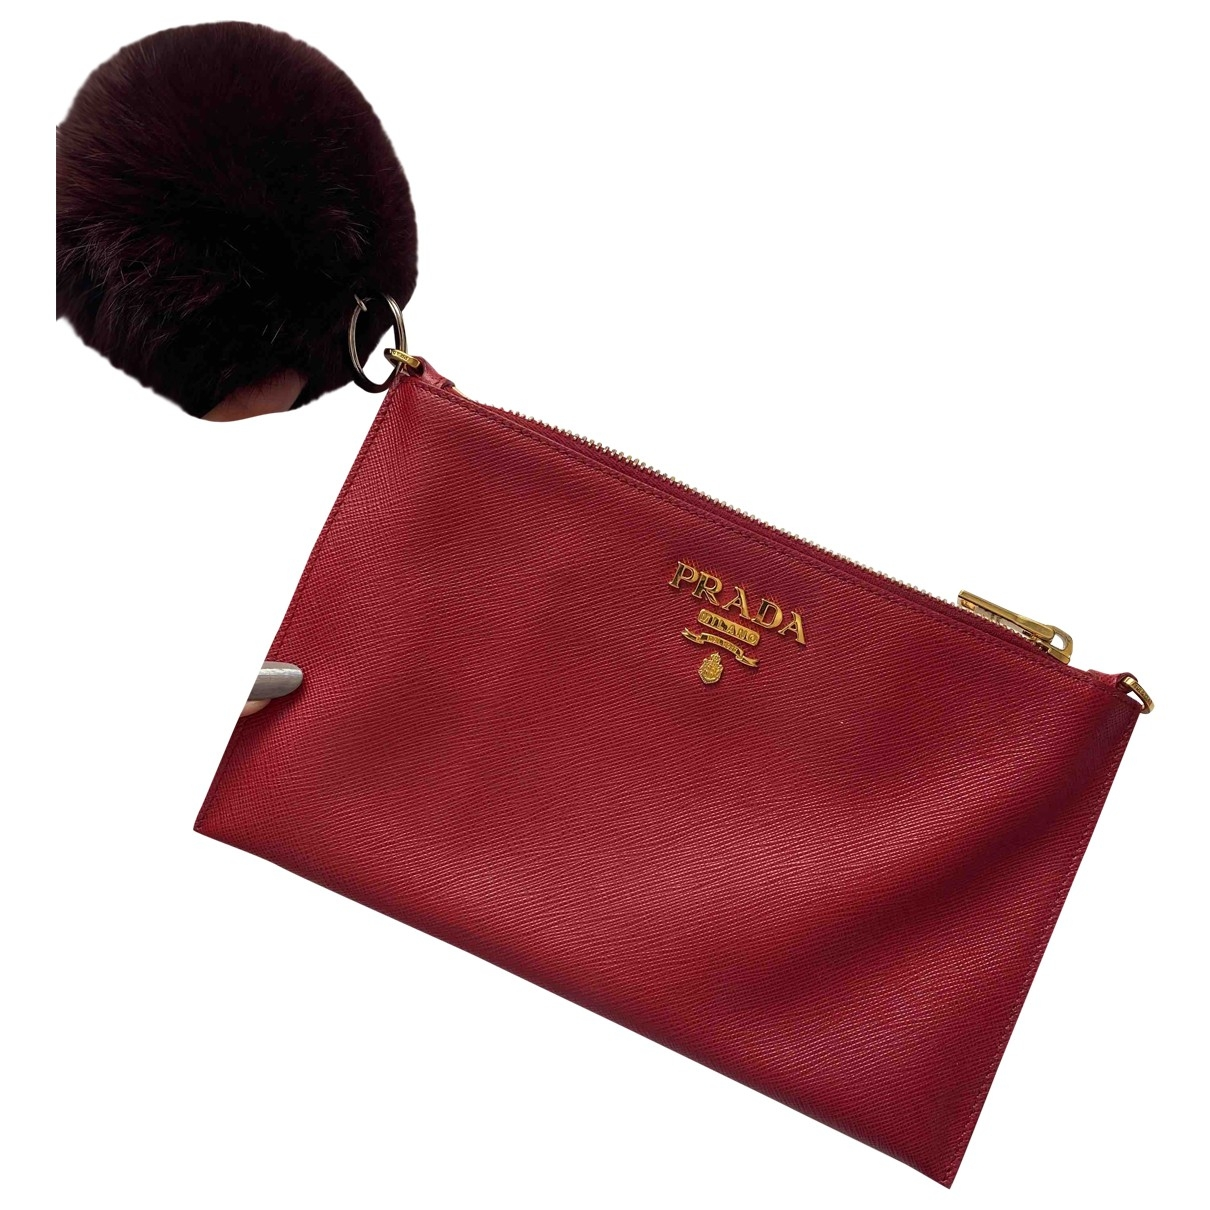 Prada \N Red Leather Clutch bag for Women \N